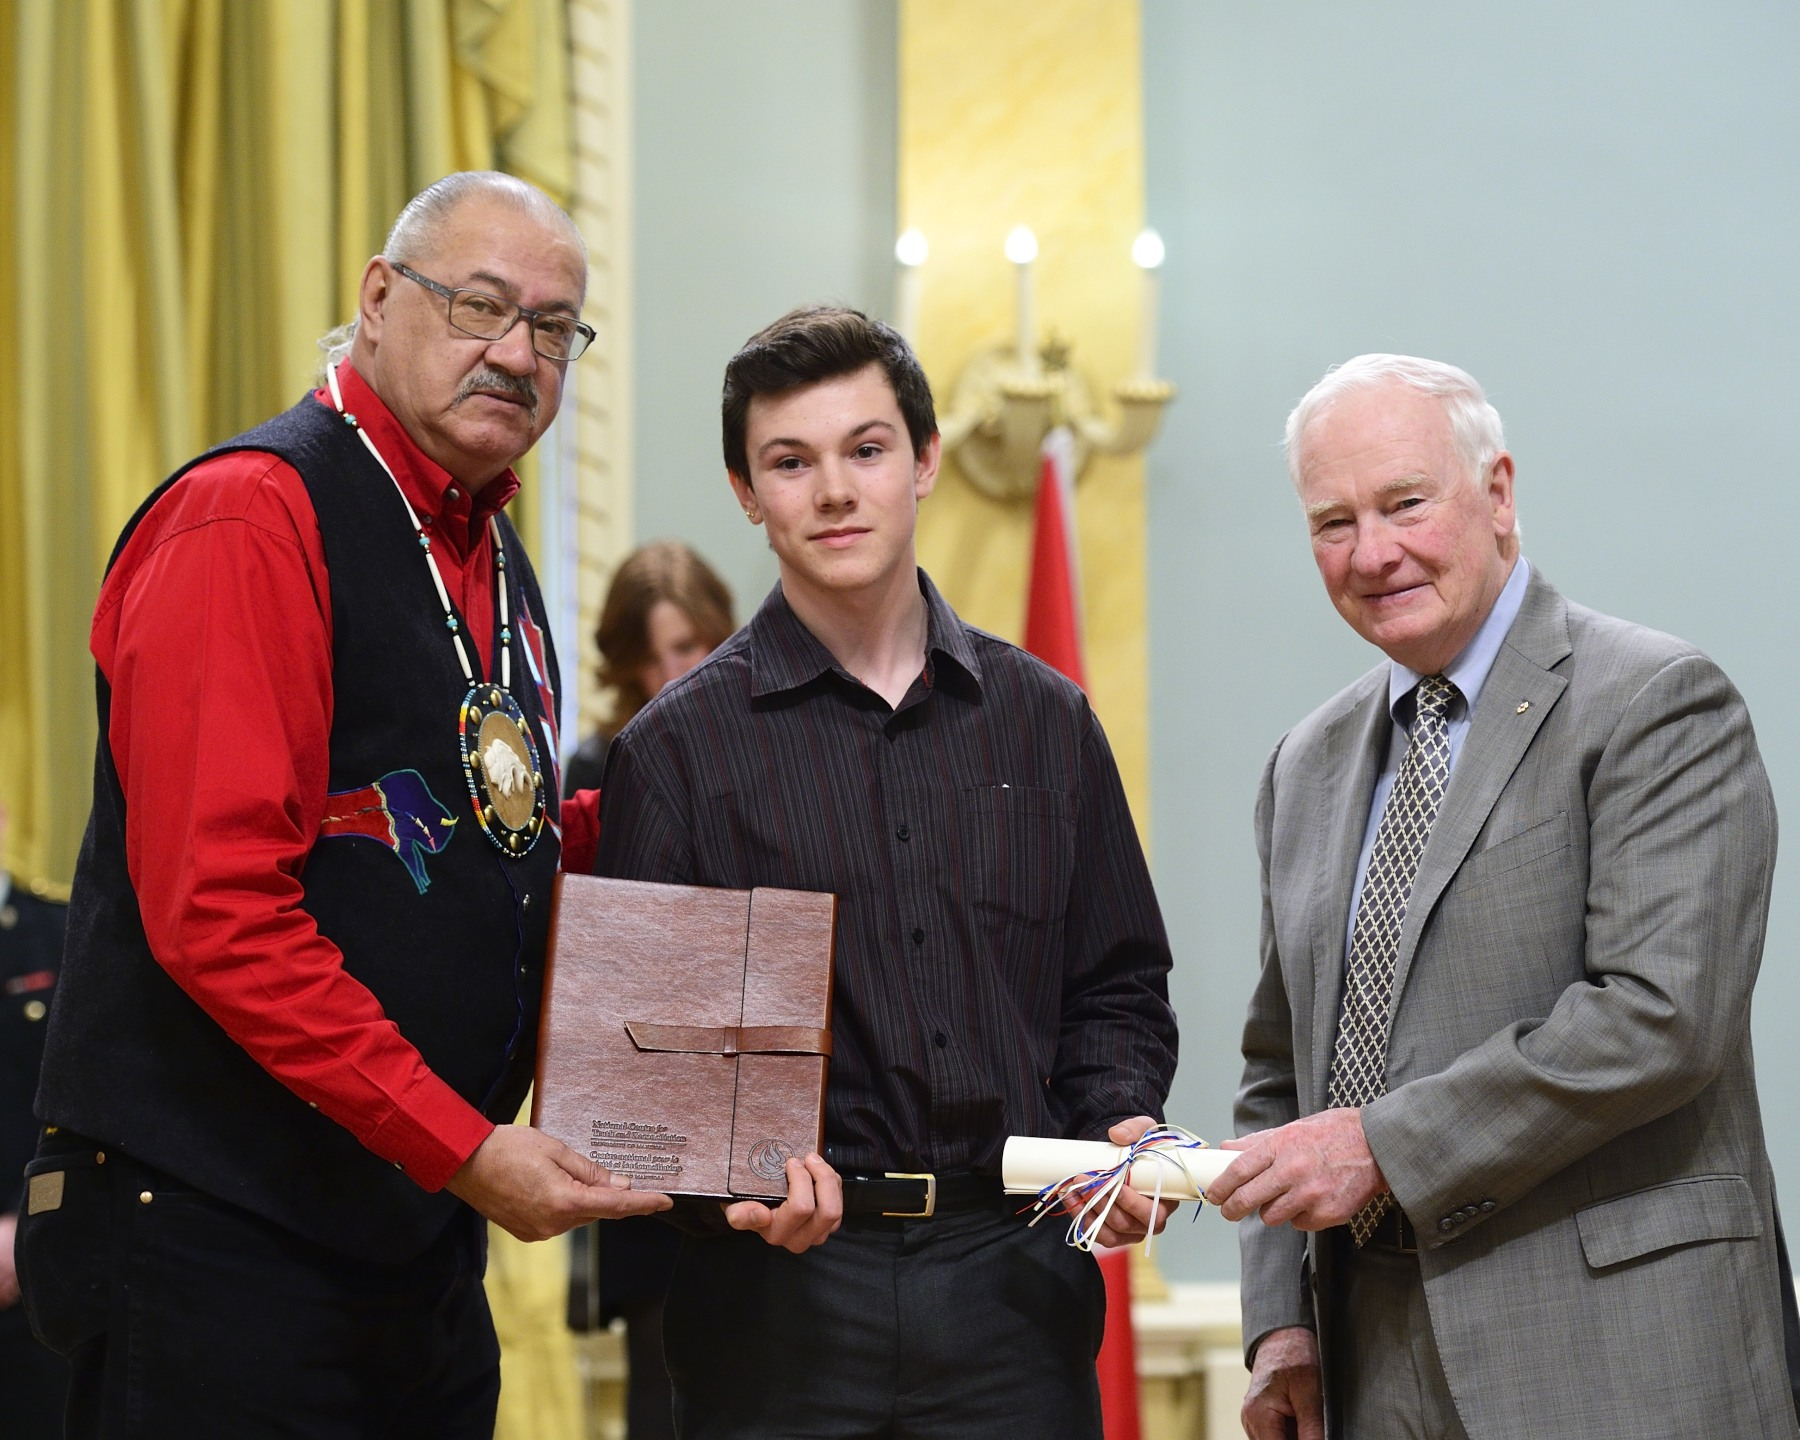 Christopher Sanford Beck, a grade 10 student from Cochin, Saskatchewan, received a certificate and a gift from the Governor General and Mr. Arcand.